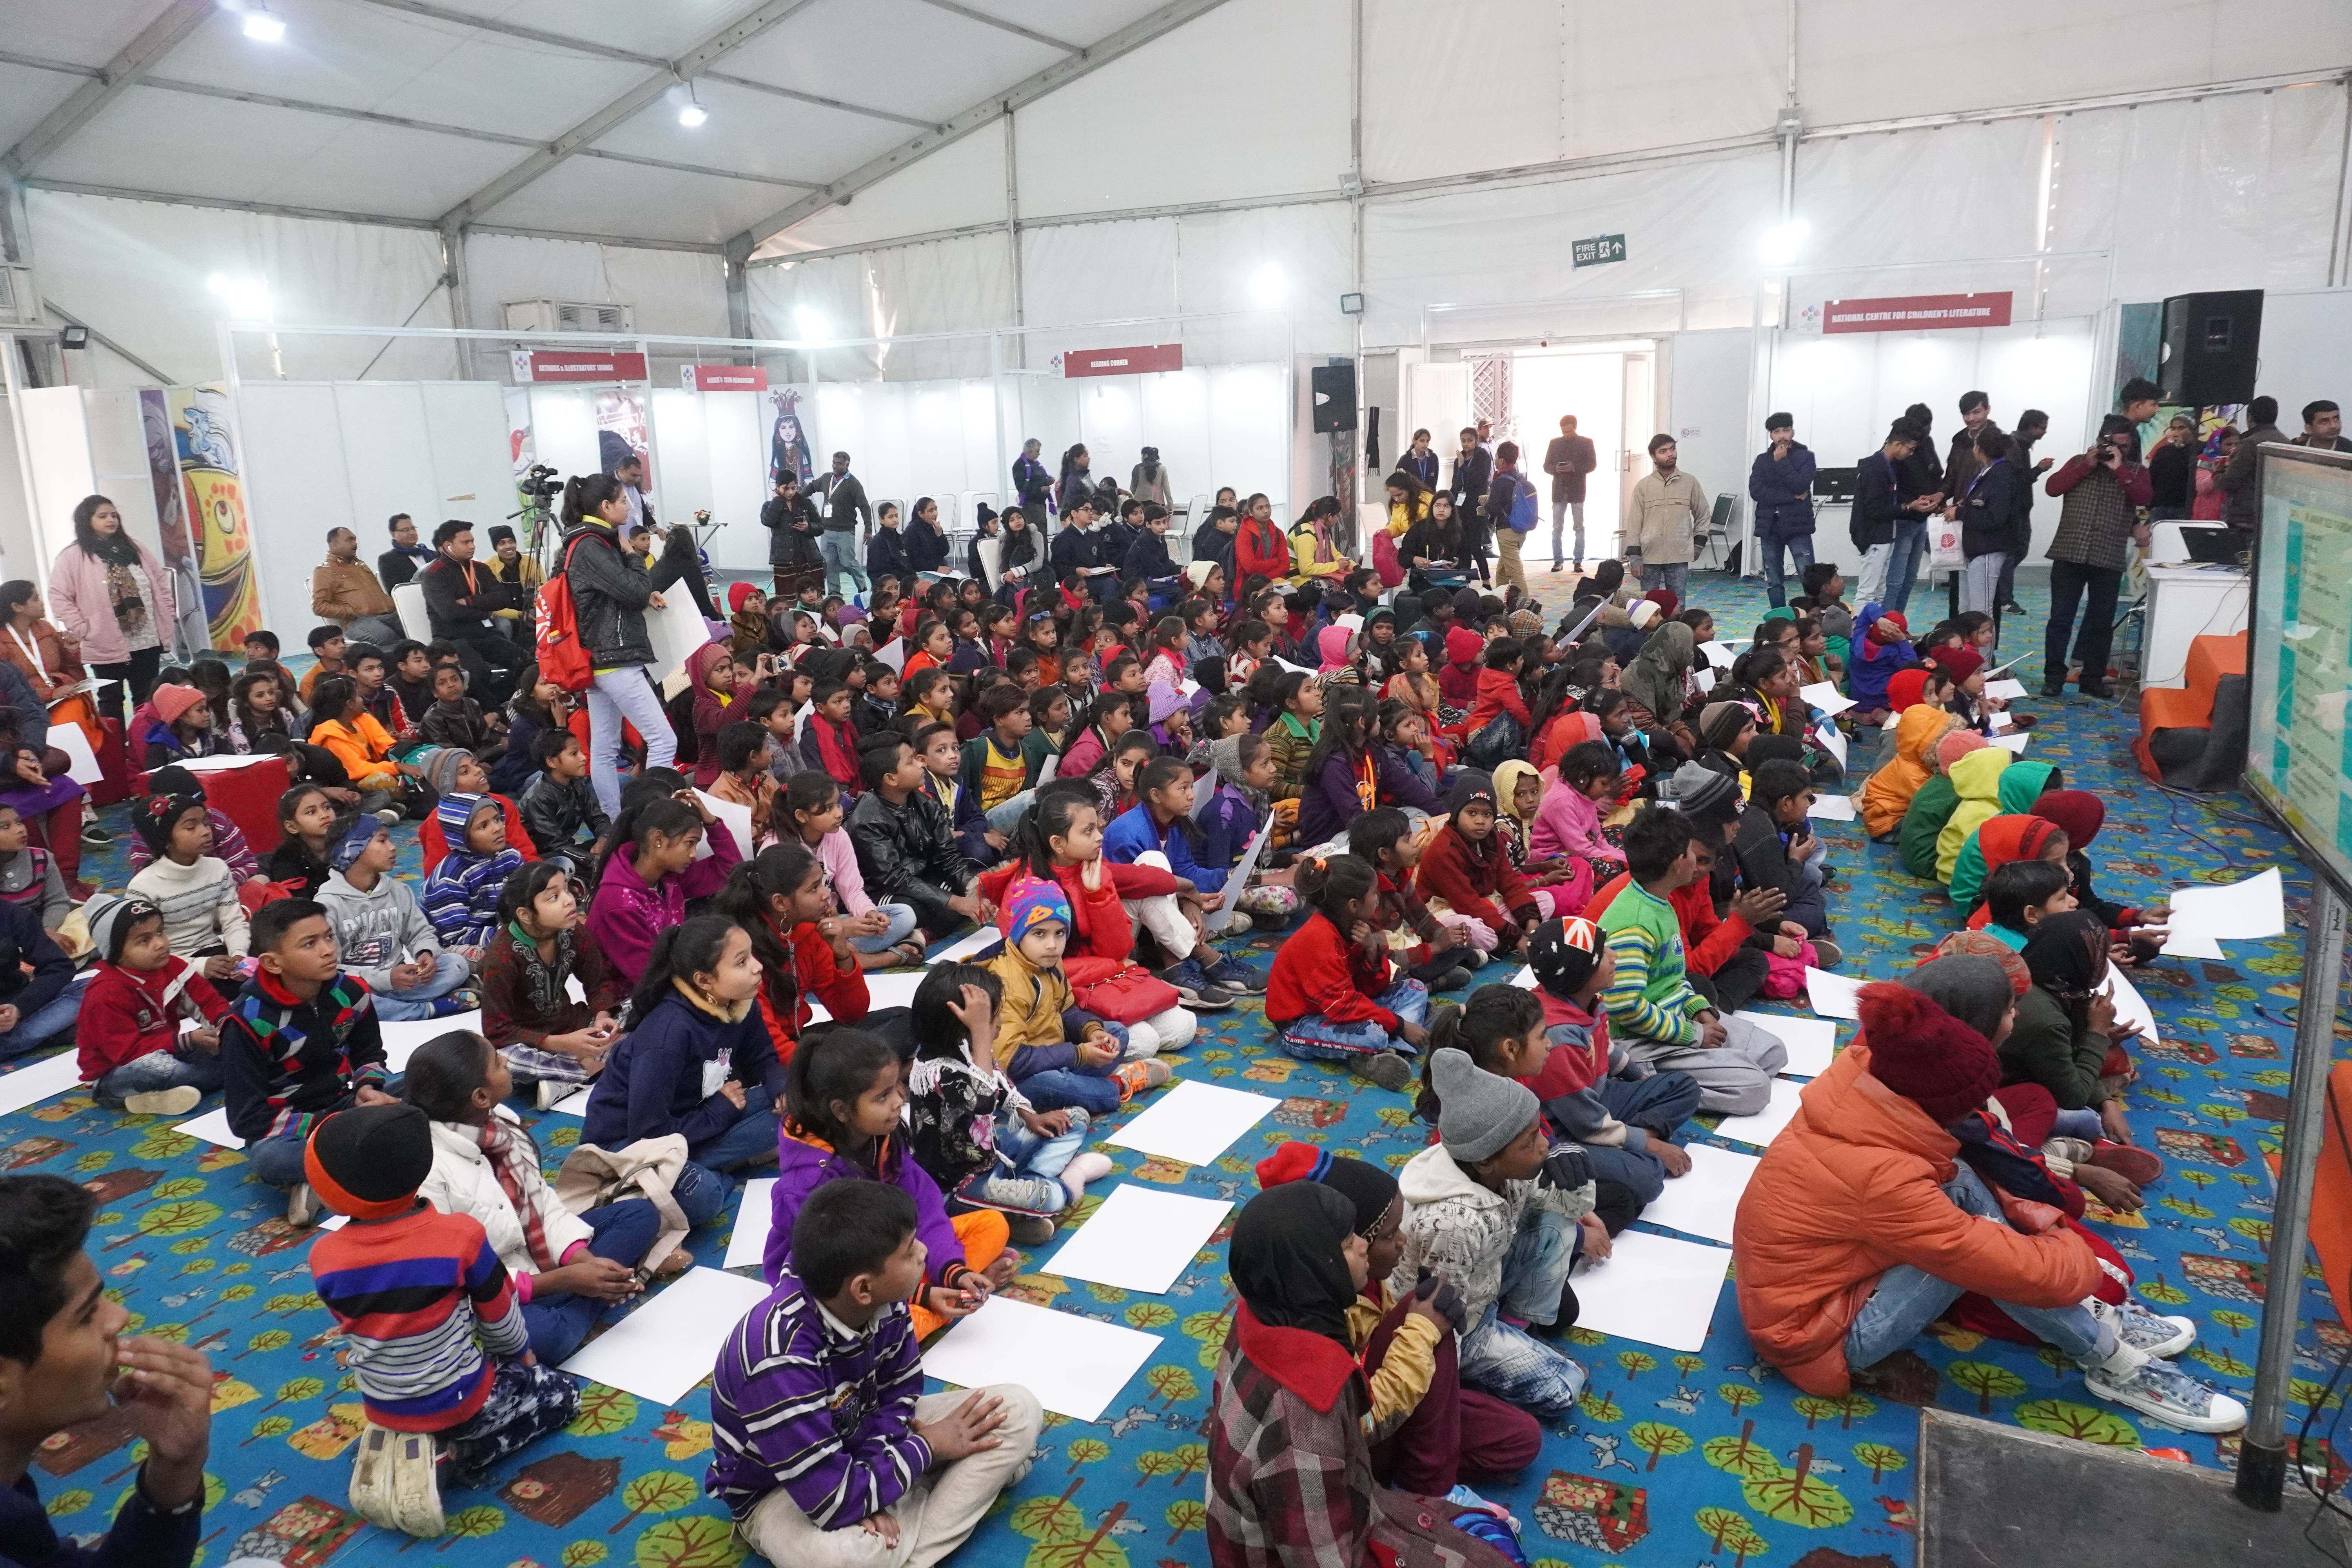 Presence of various international exhibitors at New Delhi World Book Fair 2020